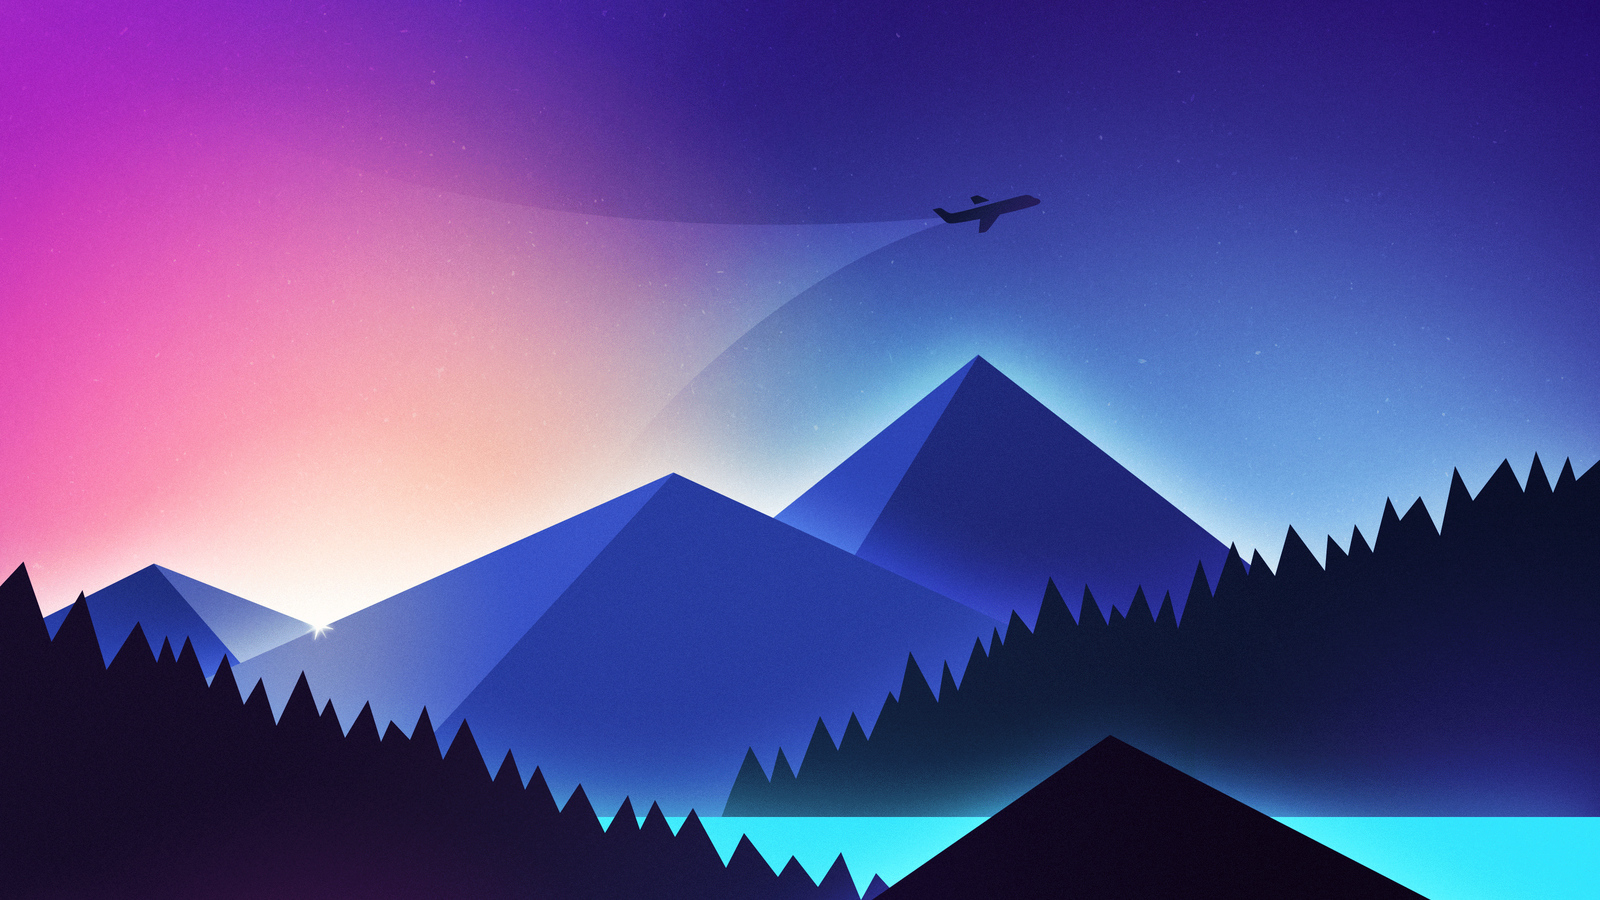 1600x900 minimalism plane 1600x900 resolution hd 4k wallpapers images backgrounds photos and - Wallpapers 1600x900 ...